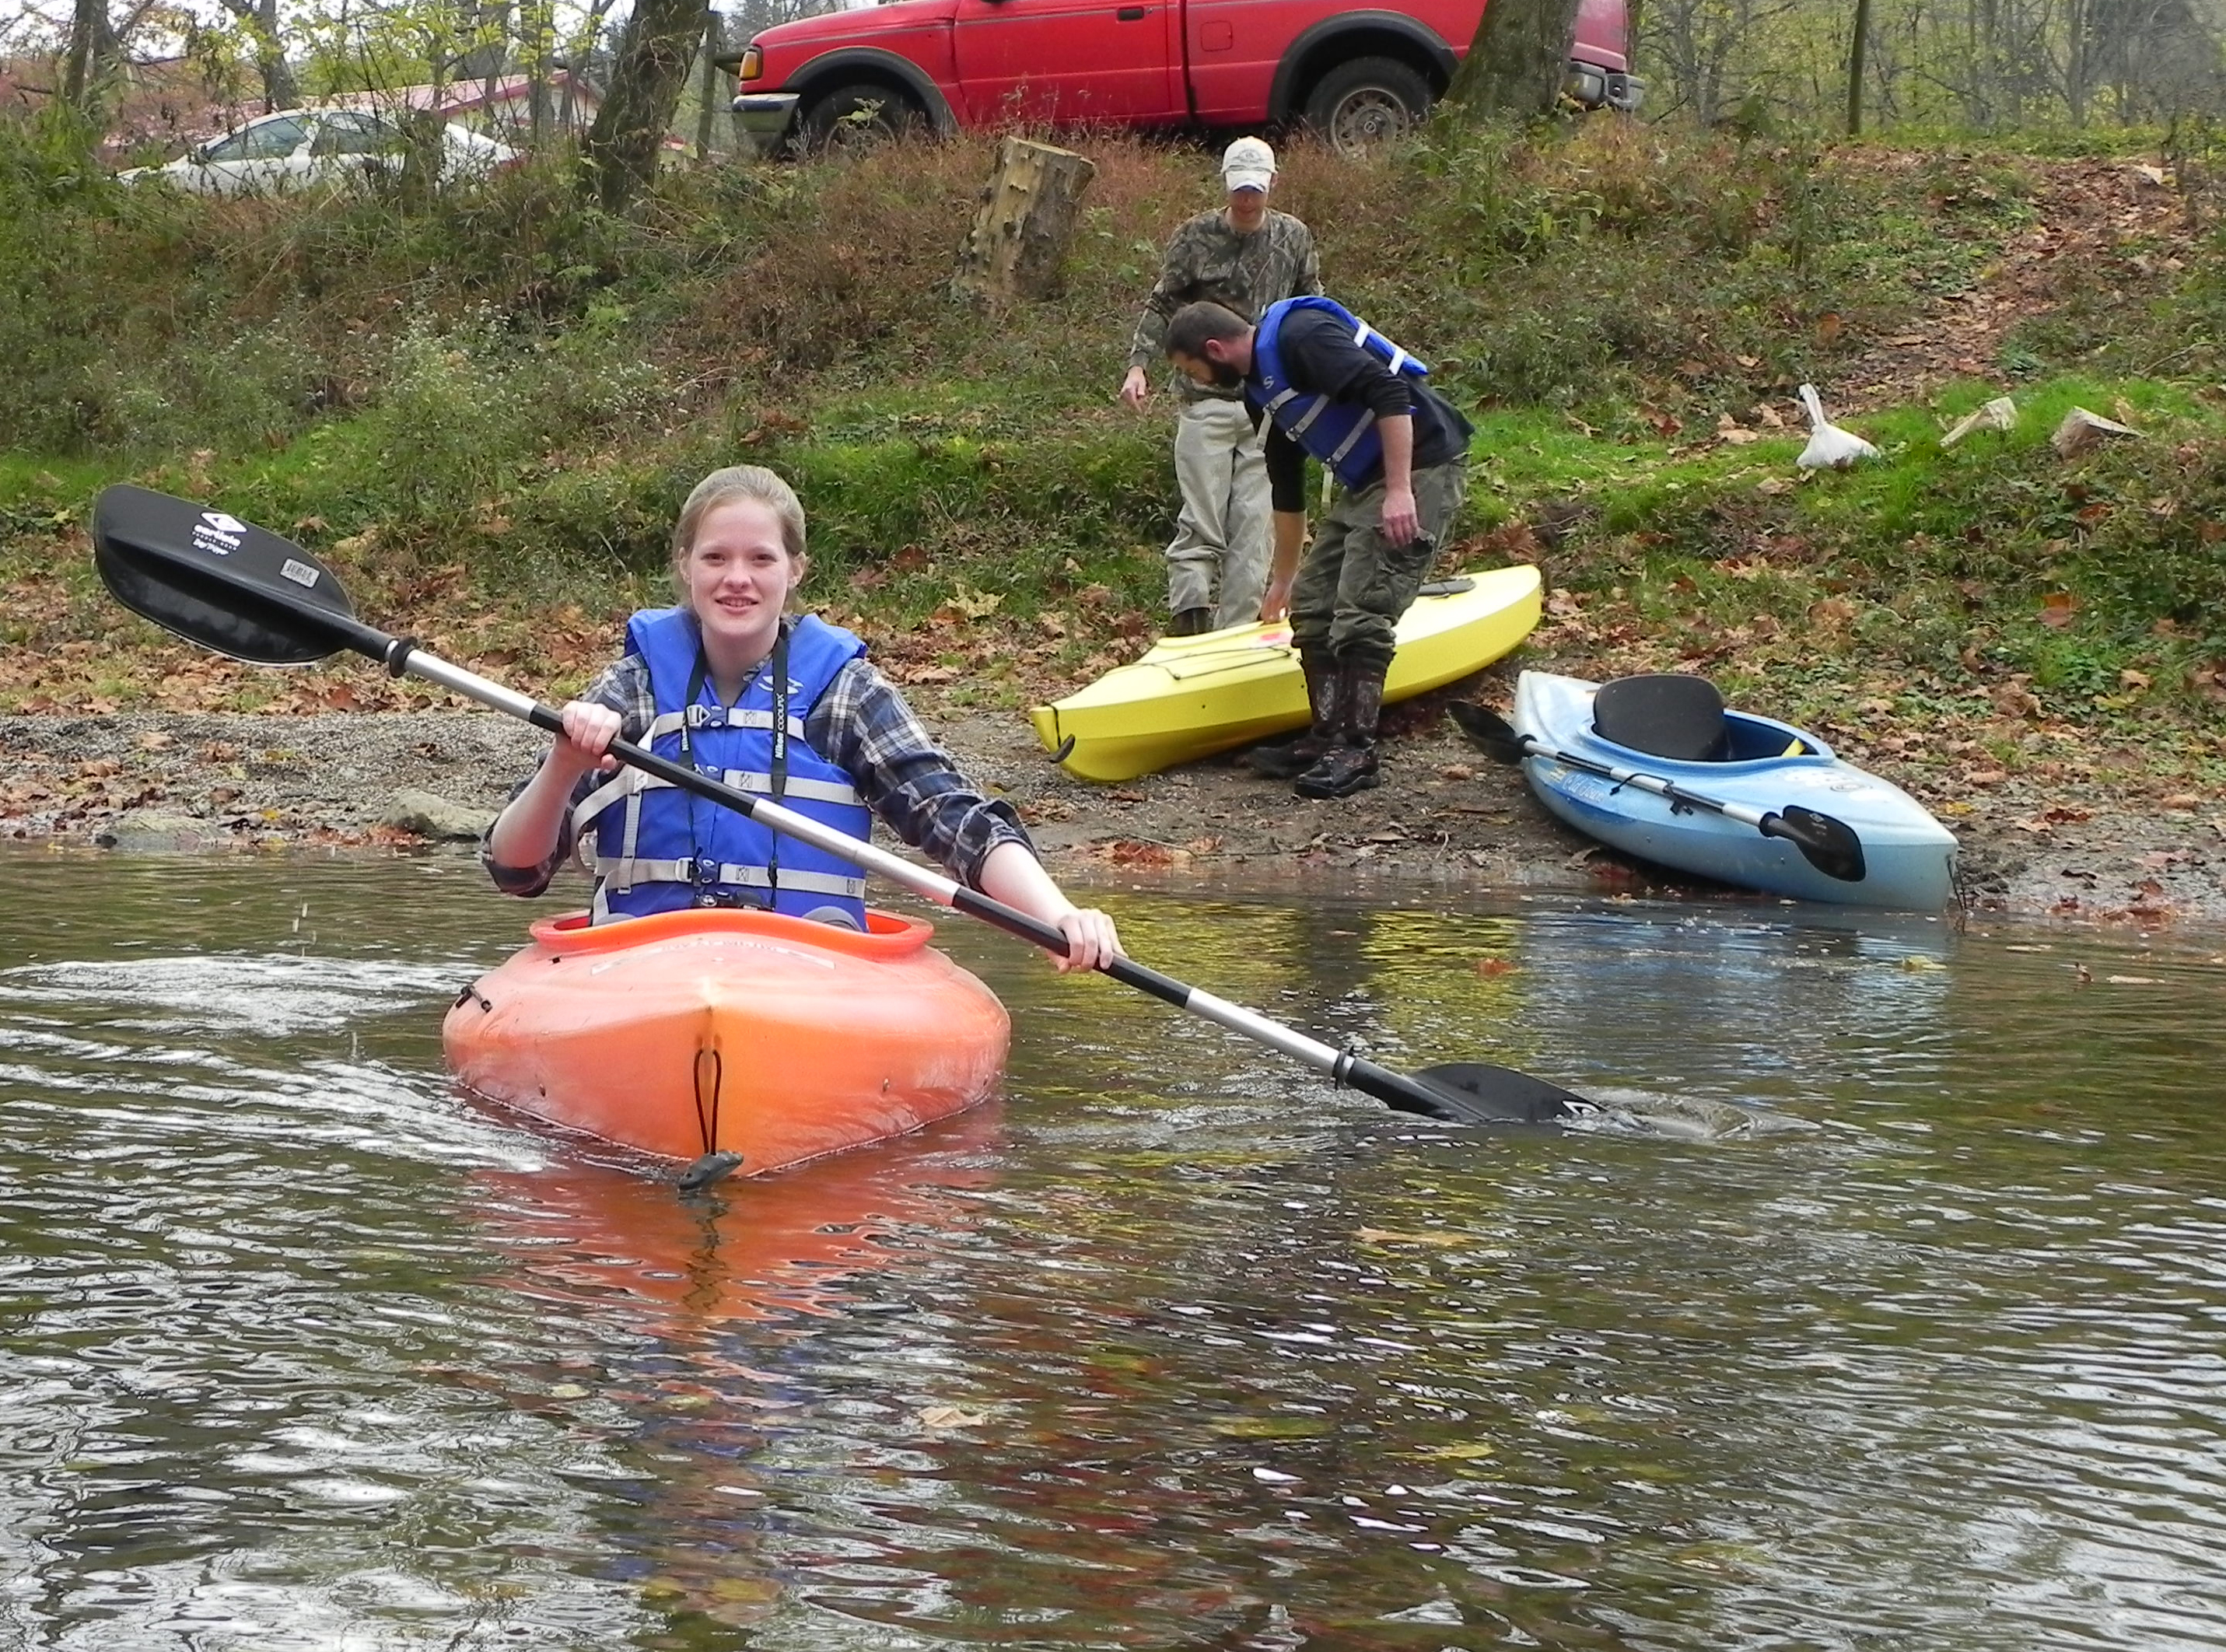 Student in kayak with other students on riverbank